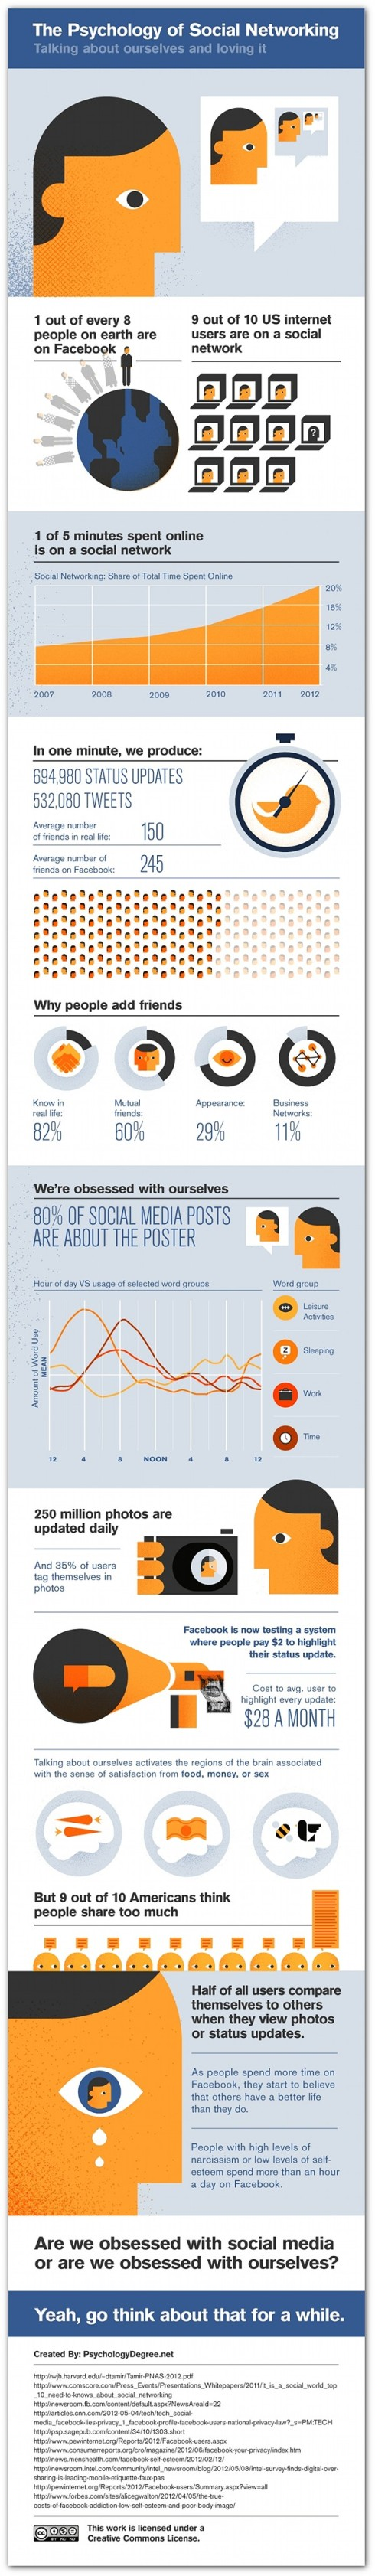 The Psychology of Social Networking - Infographic